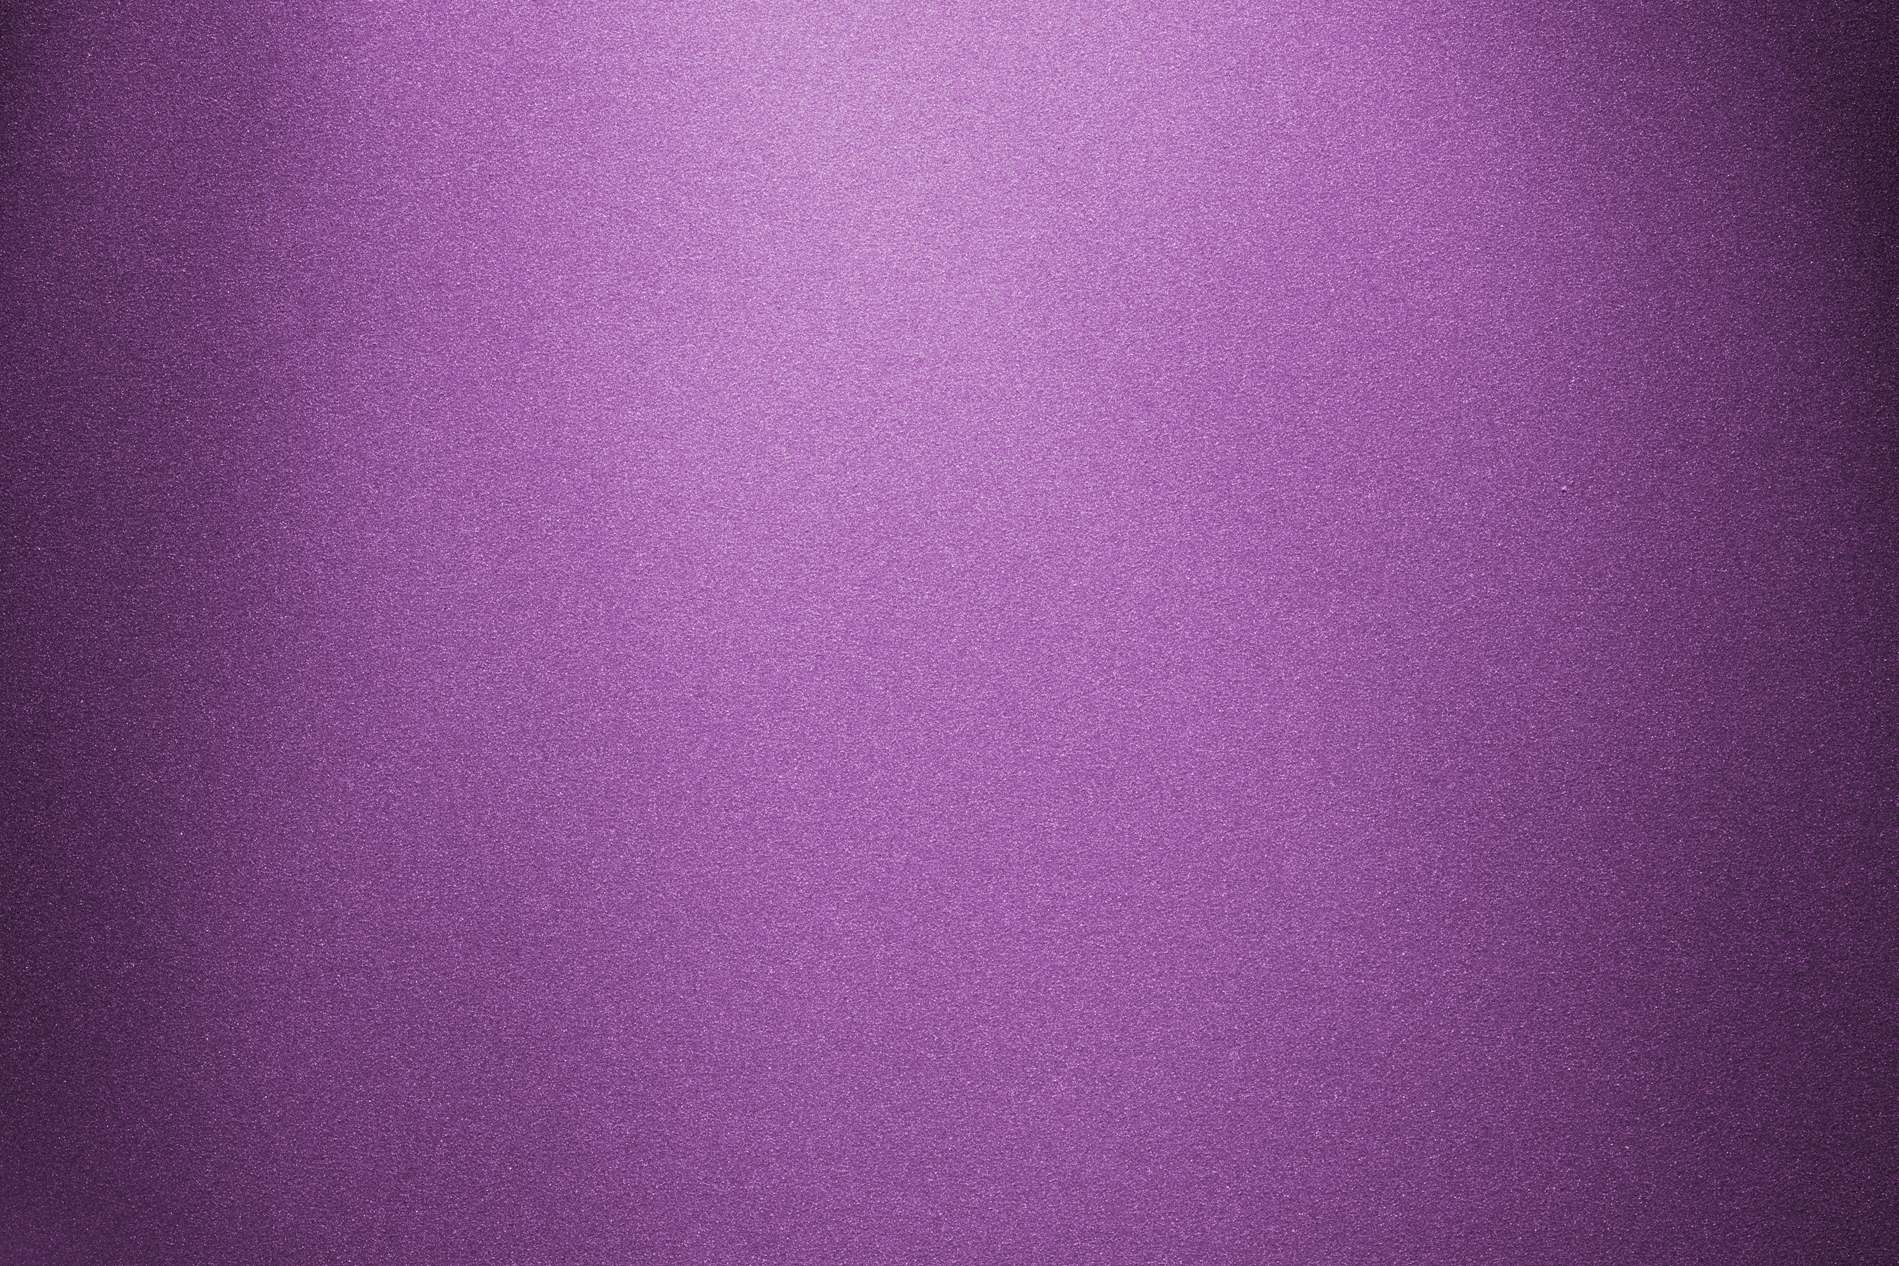 Violet purple wall background texture photohdx for Purple wallpaper for walls